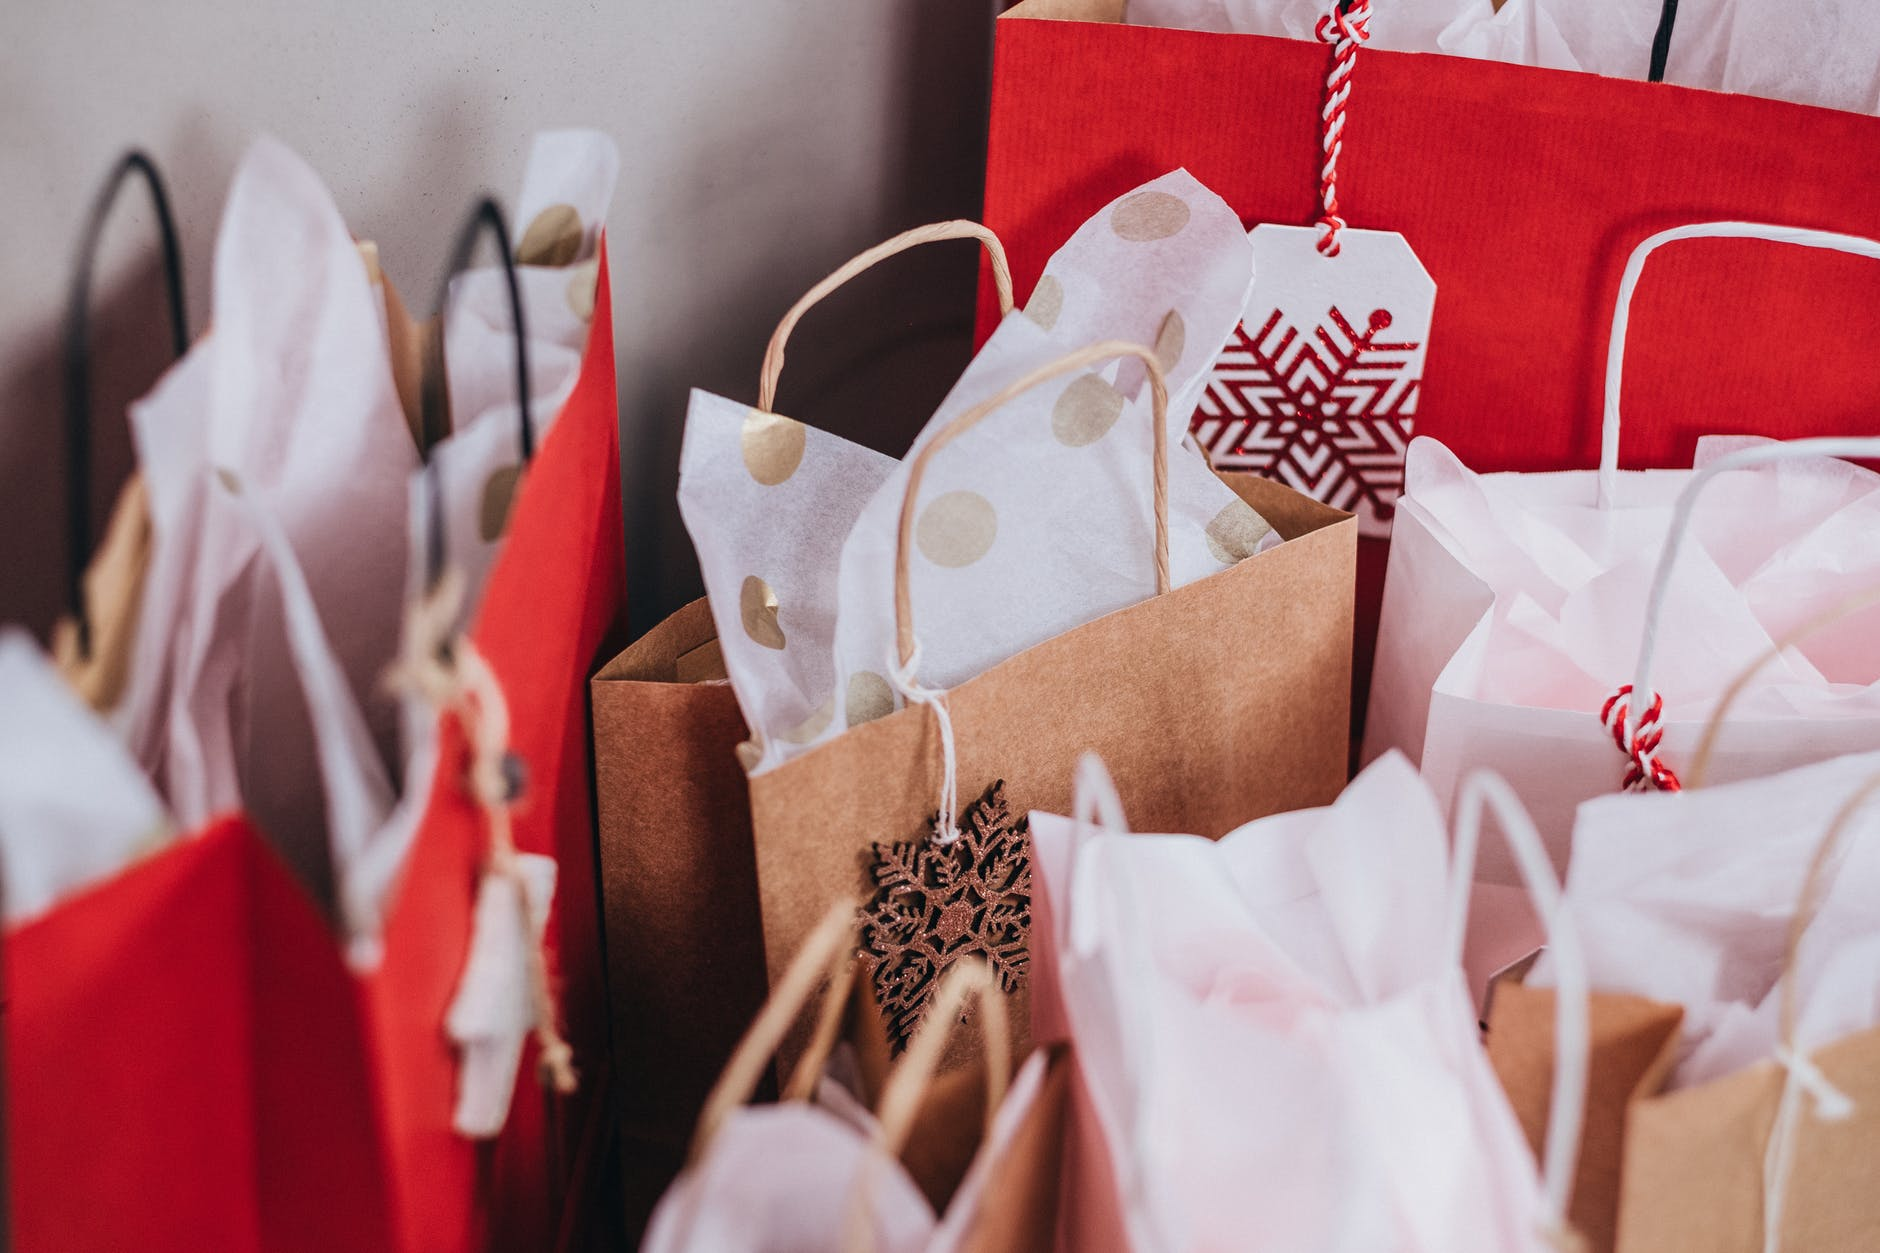 Brown and red paper bags with handles and with designs.